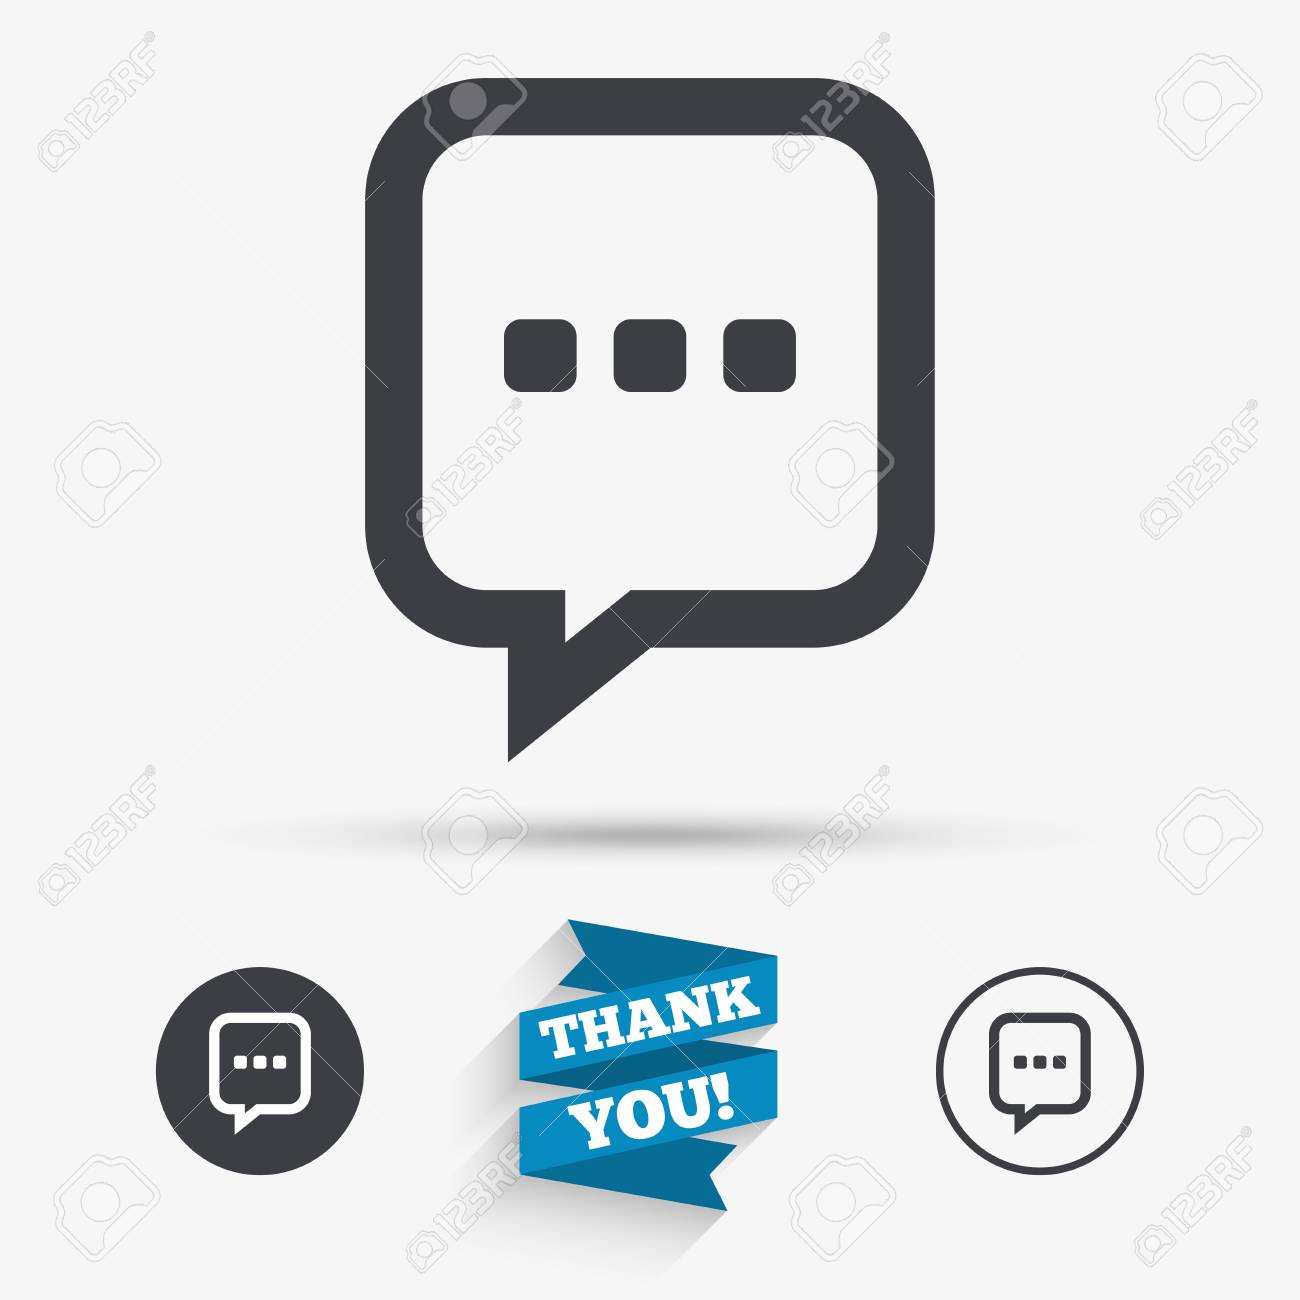 Chat sign icon speech bubble with three dots symbol speech bubble with three dots symbol communication chat bubble flat biocorpaavc